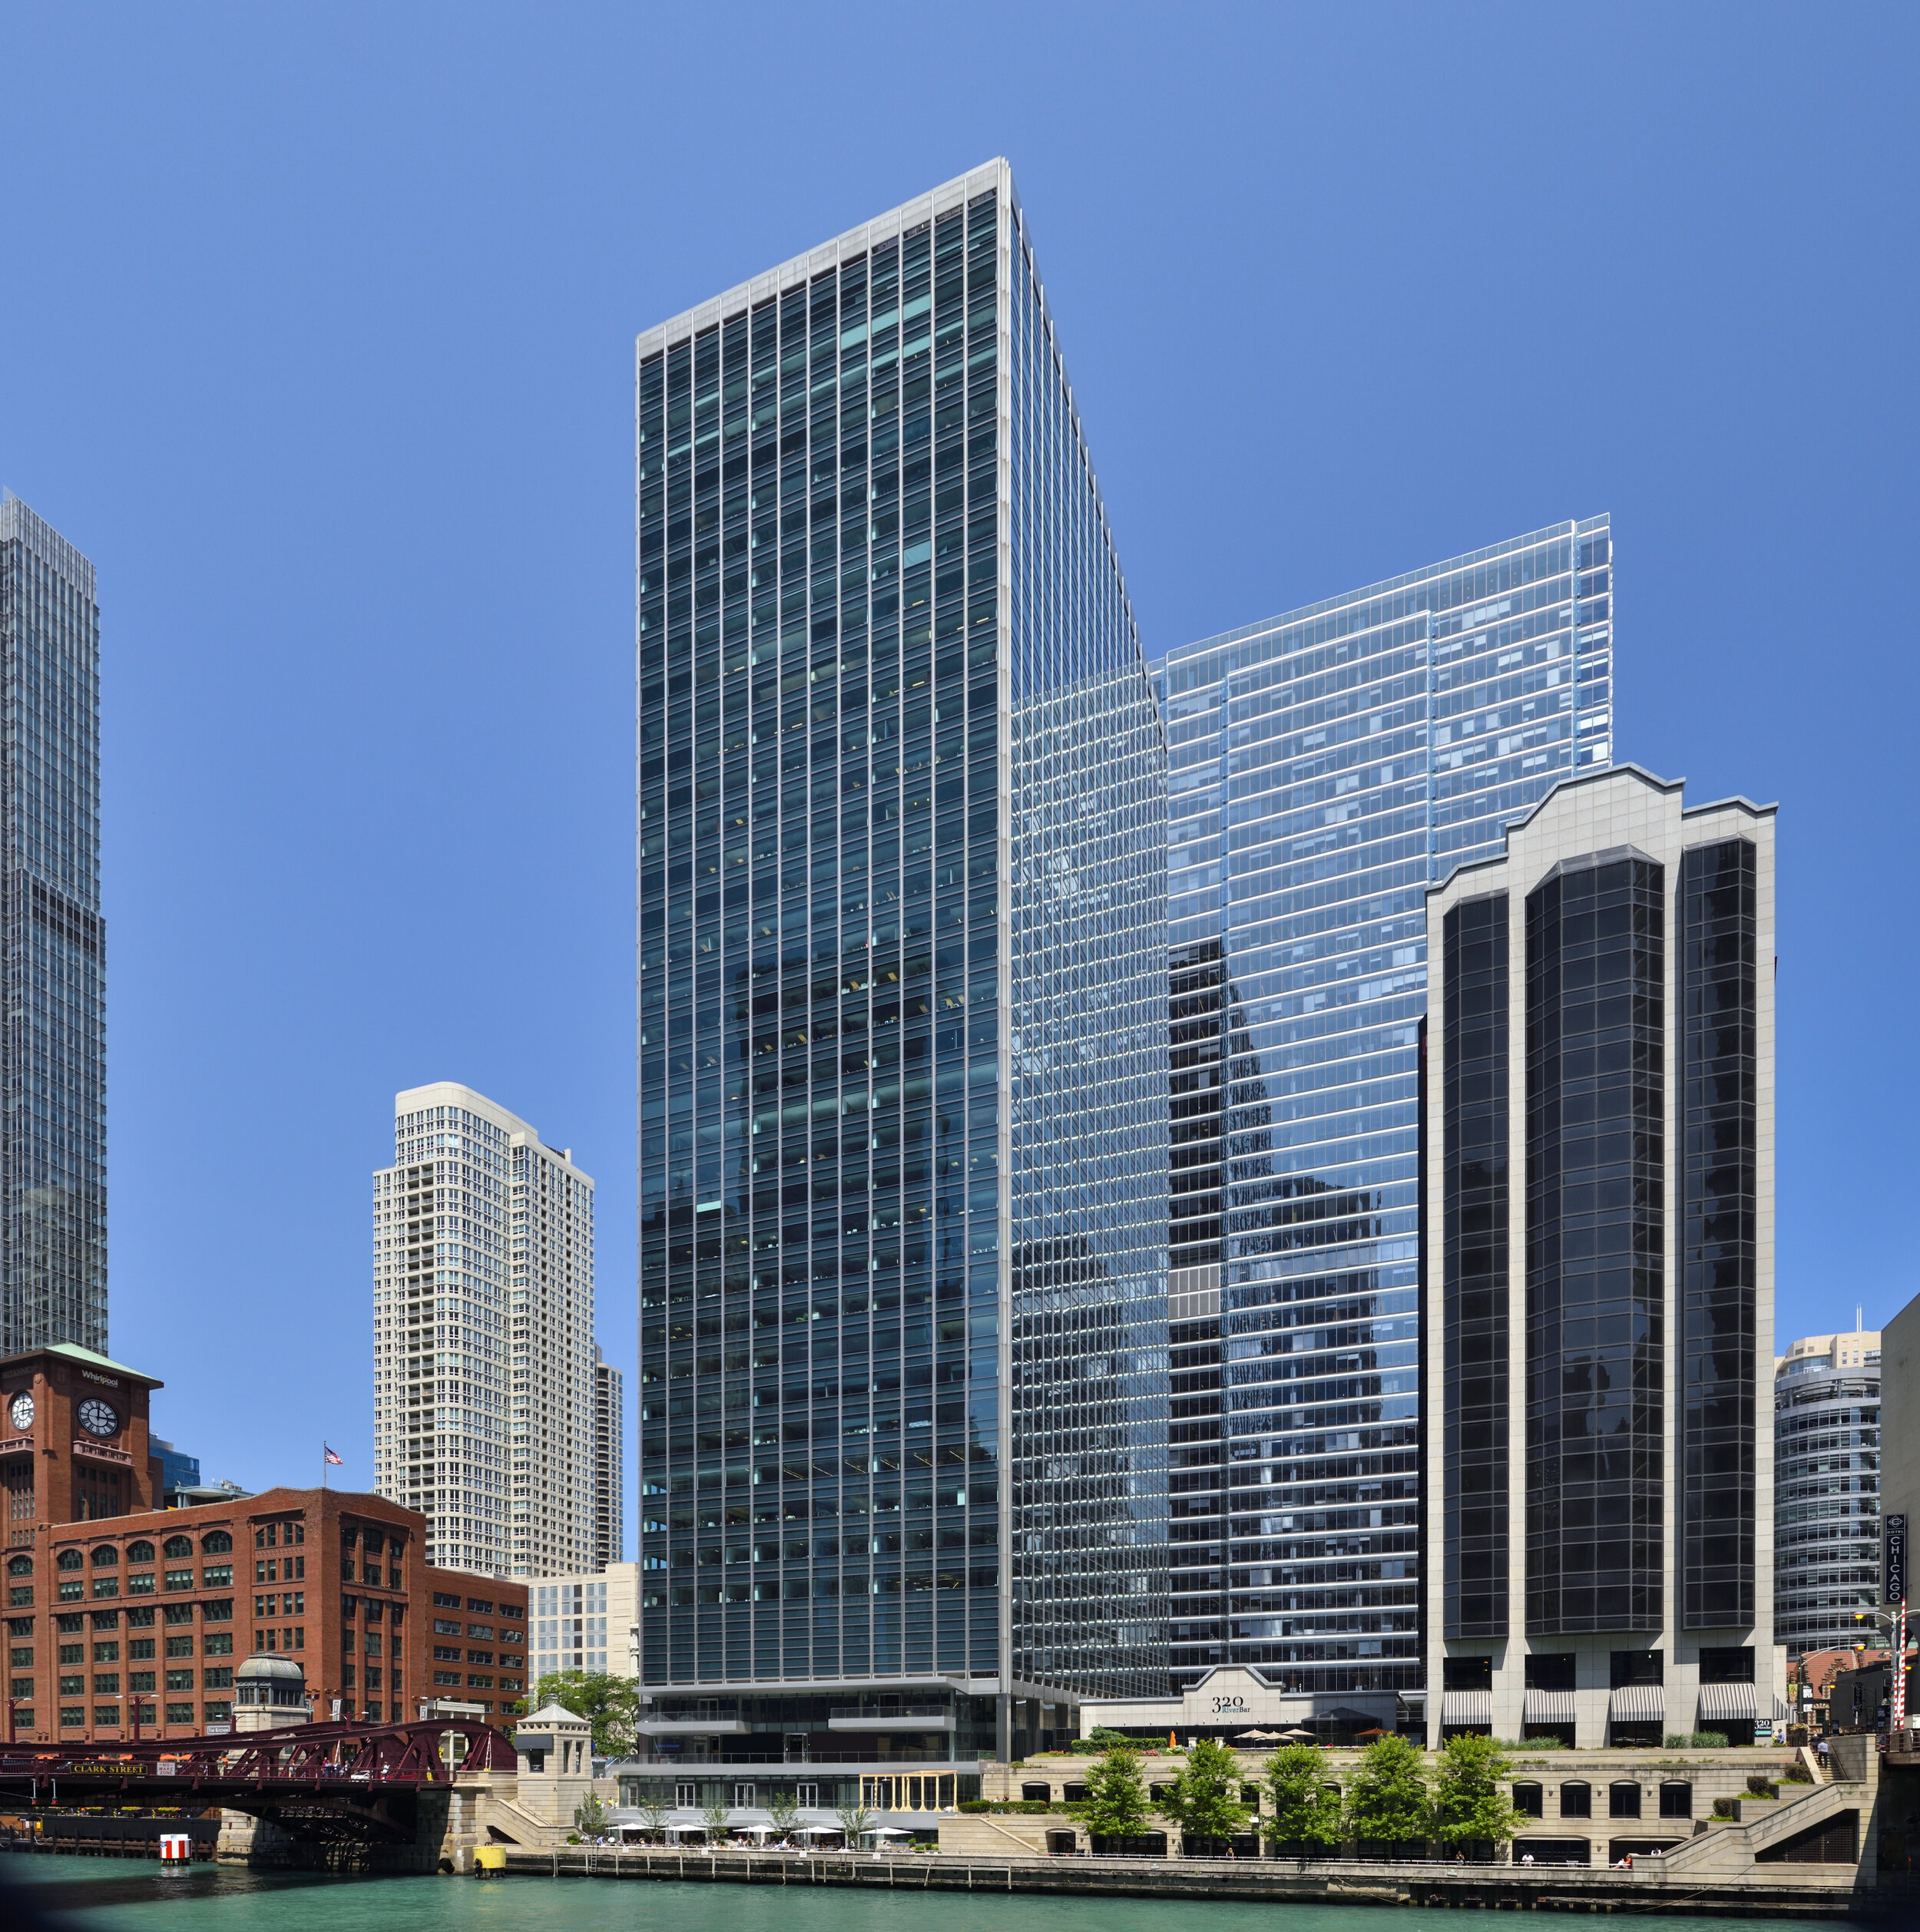 321 N Clark Street   Chicago, IL  Property Type: Office  Partners: American Realty Advisors, Hines